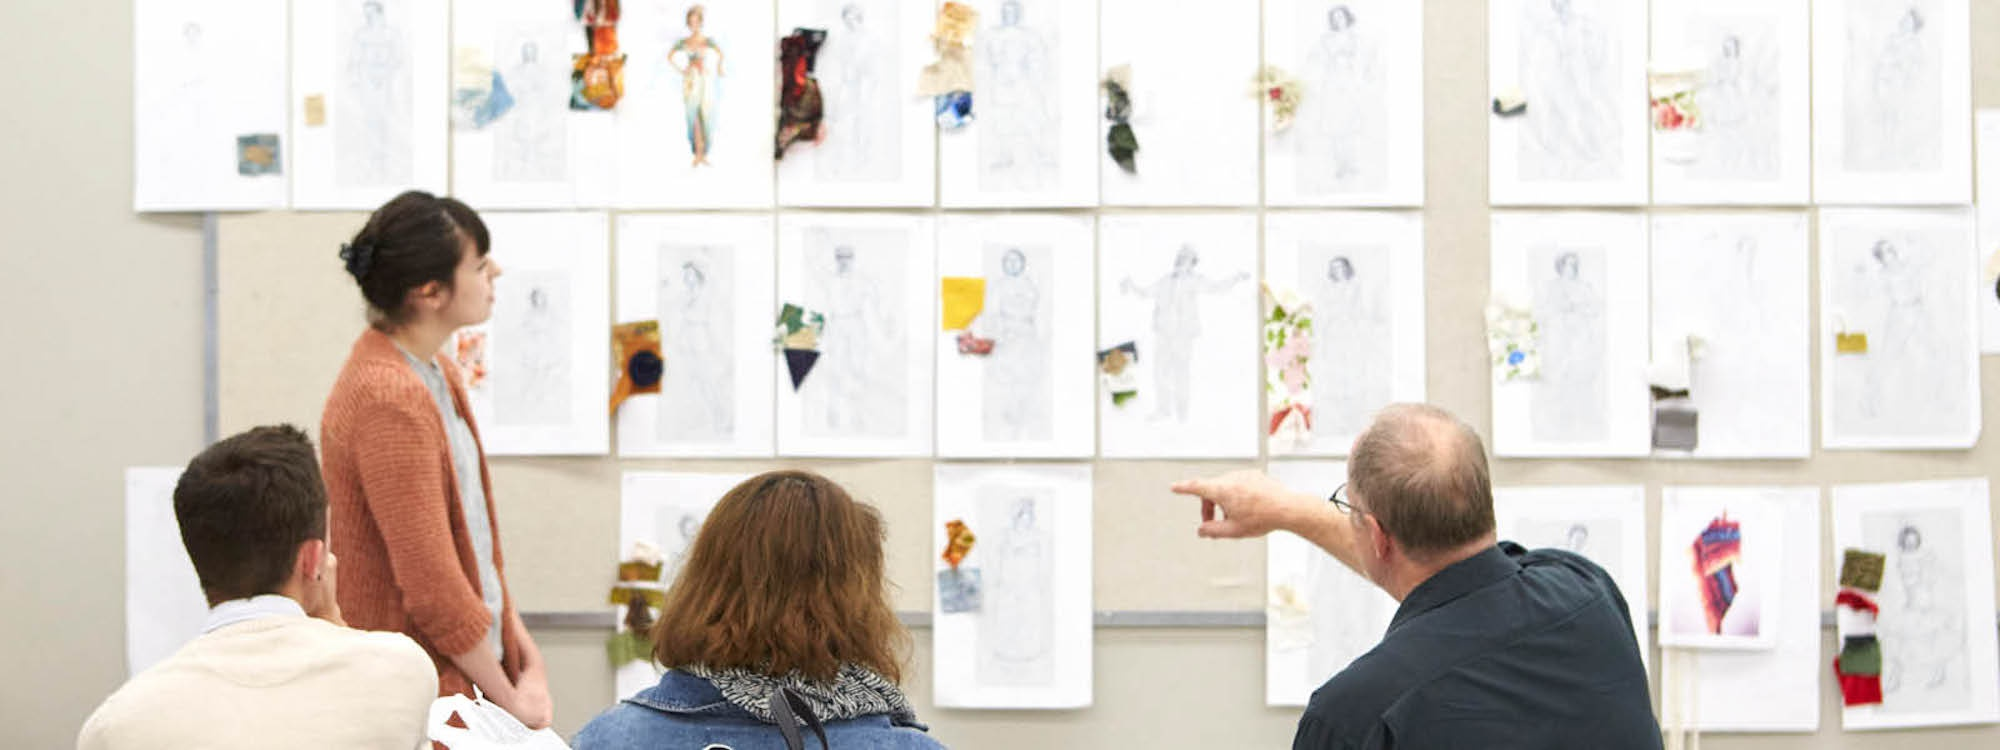 8 Top Costume Design Programs